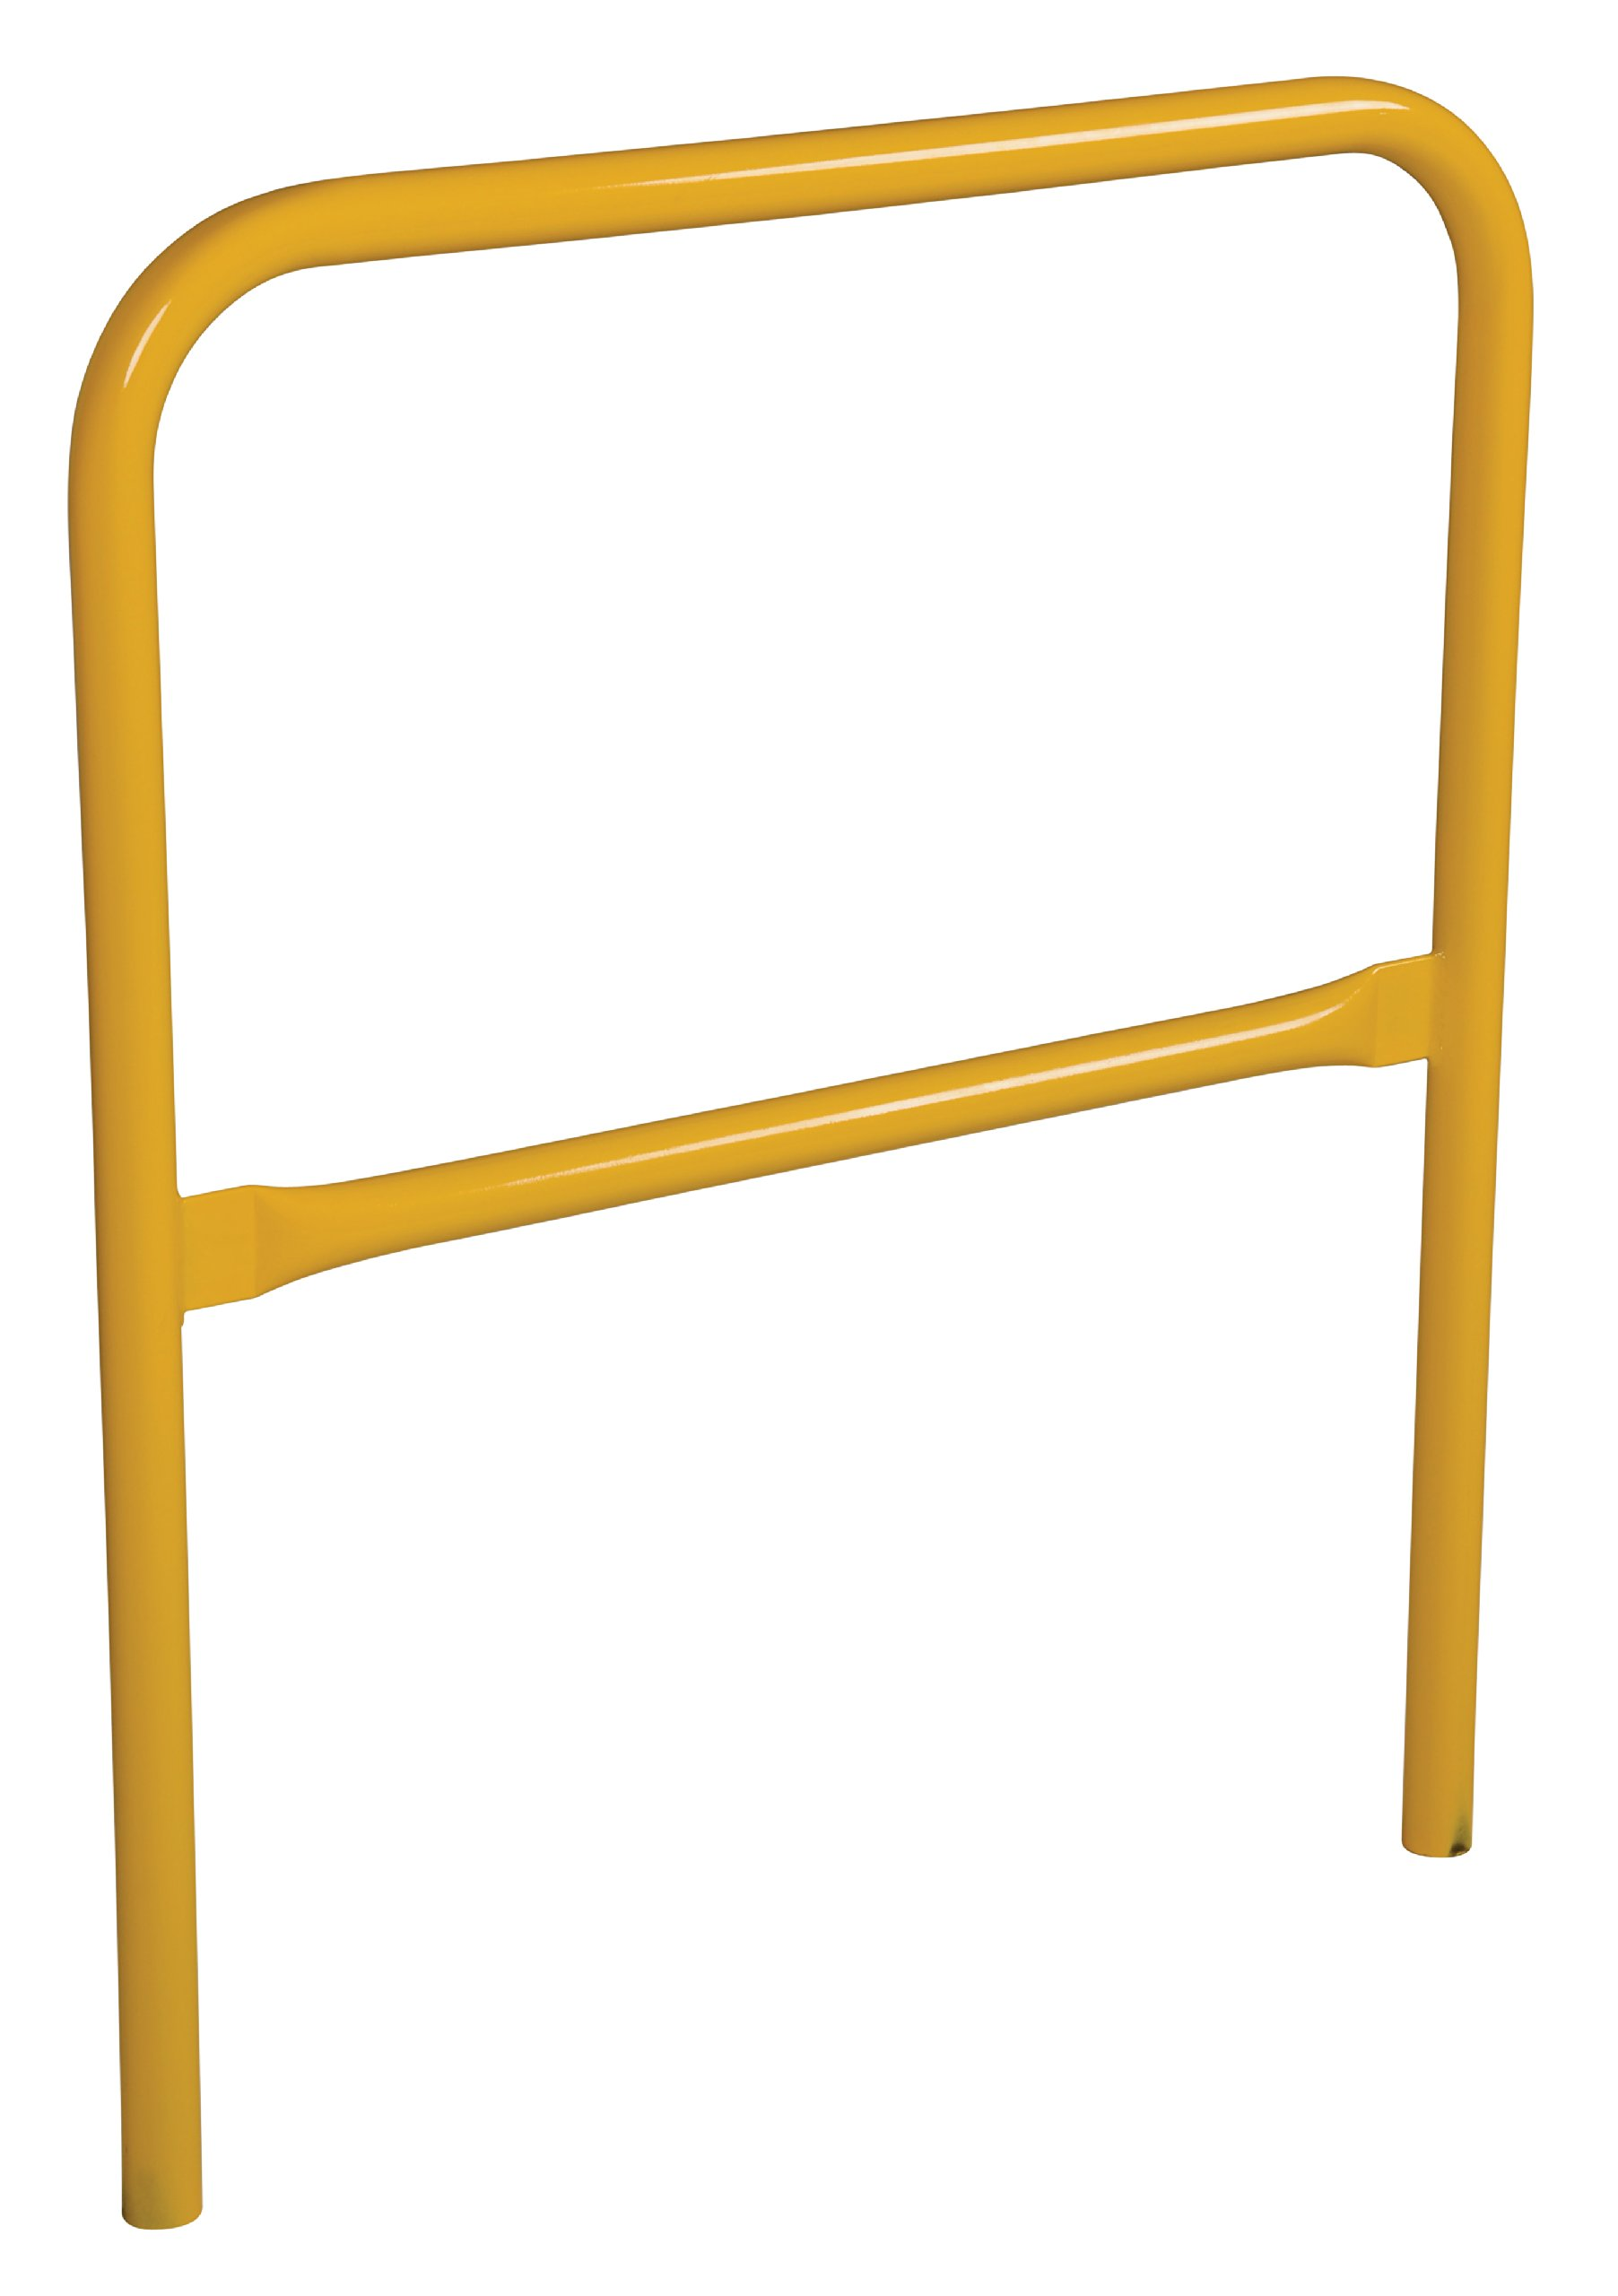 Vestil VDKR-3 Steel Pipe Safety Railing, 42'' x 36'', 1-5/8'' Outside Diameter, Safety Yellow